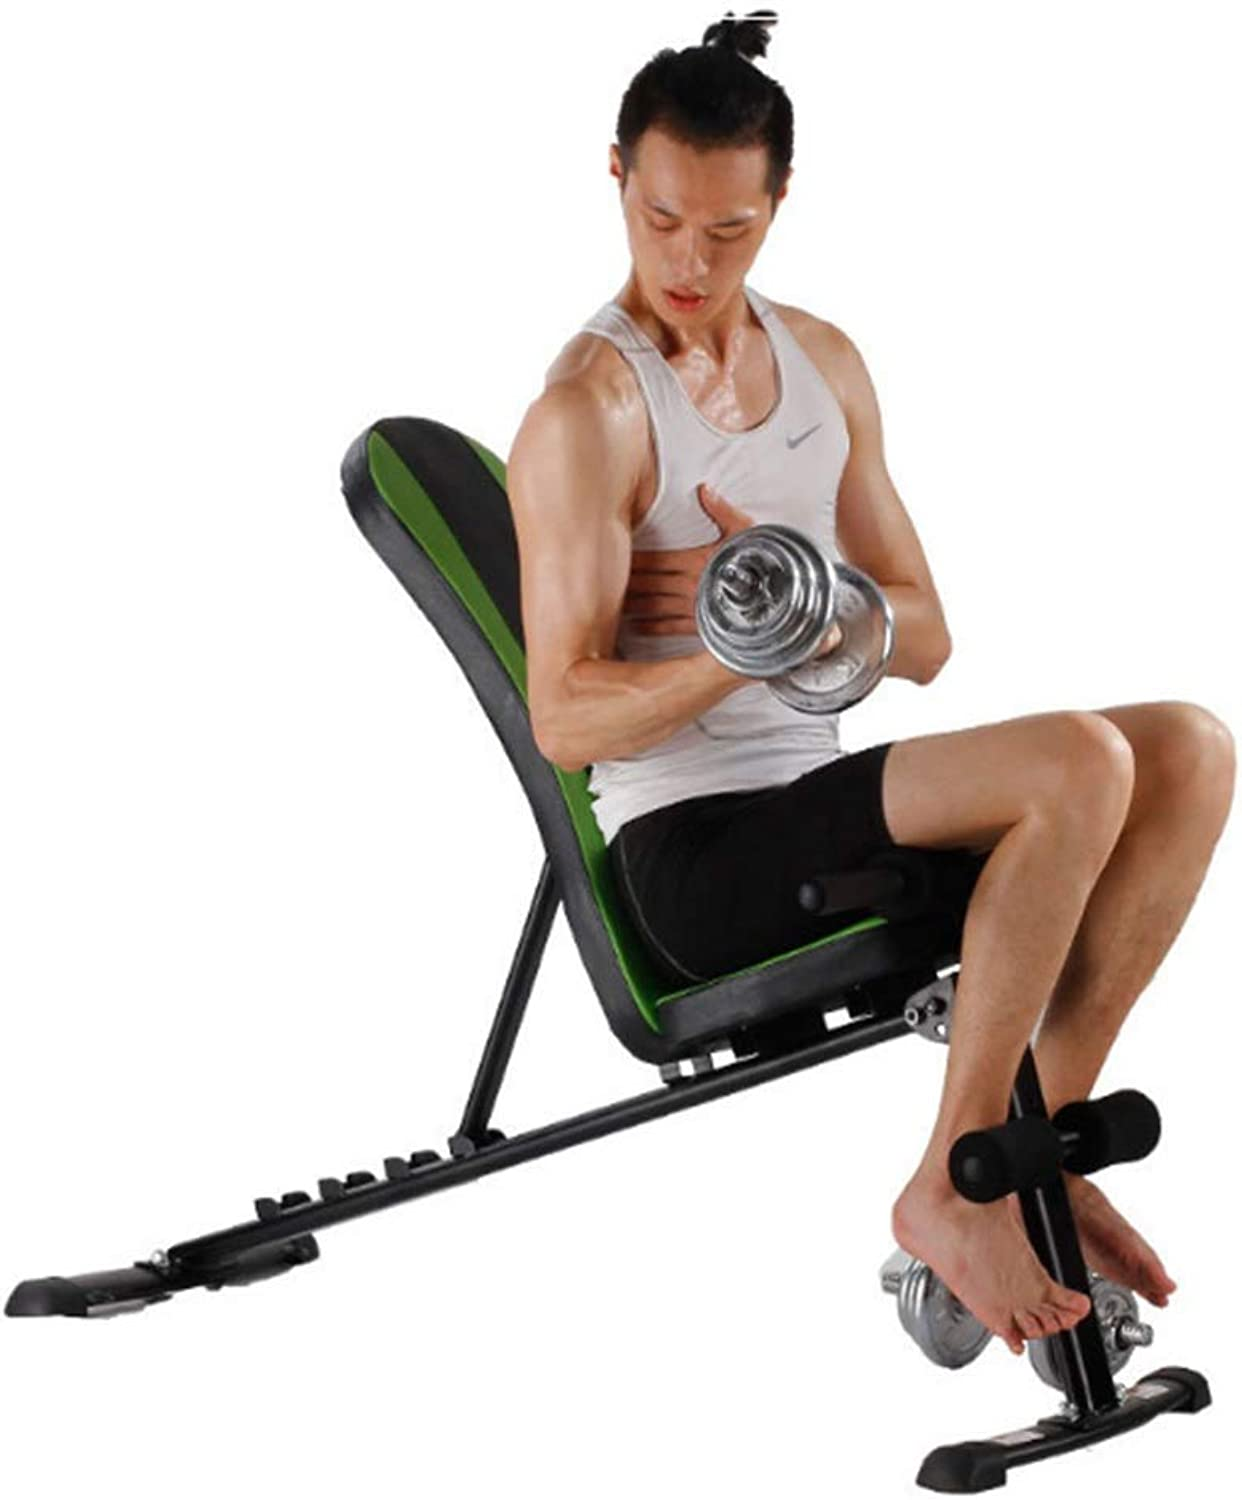 Adjustable ArcShaped Multifunctional Supine Board Home Fitness Equipment Dumbbell Bench Men's Fitness Chair Abdominal Device Board Exercise Fitness Workout